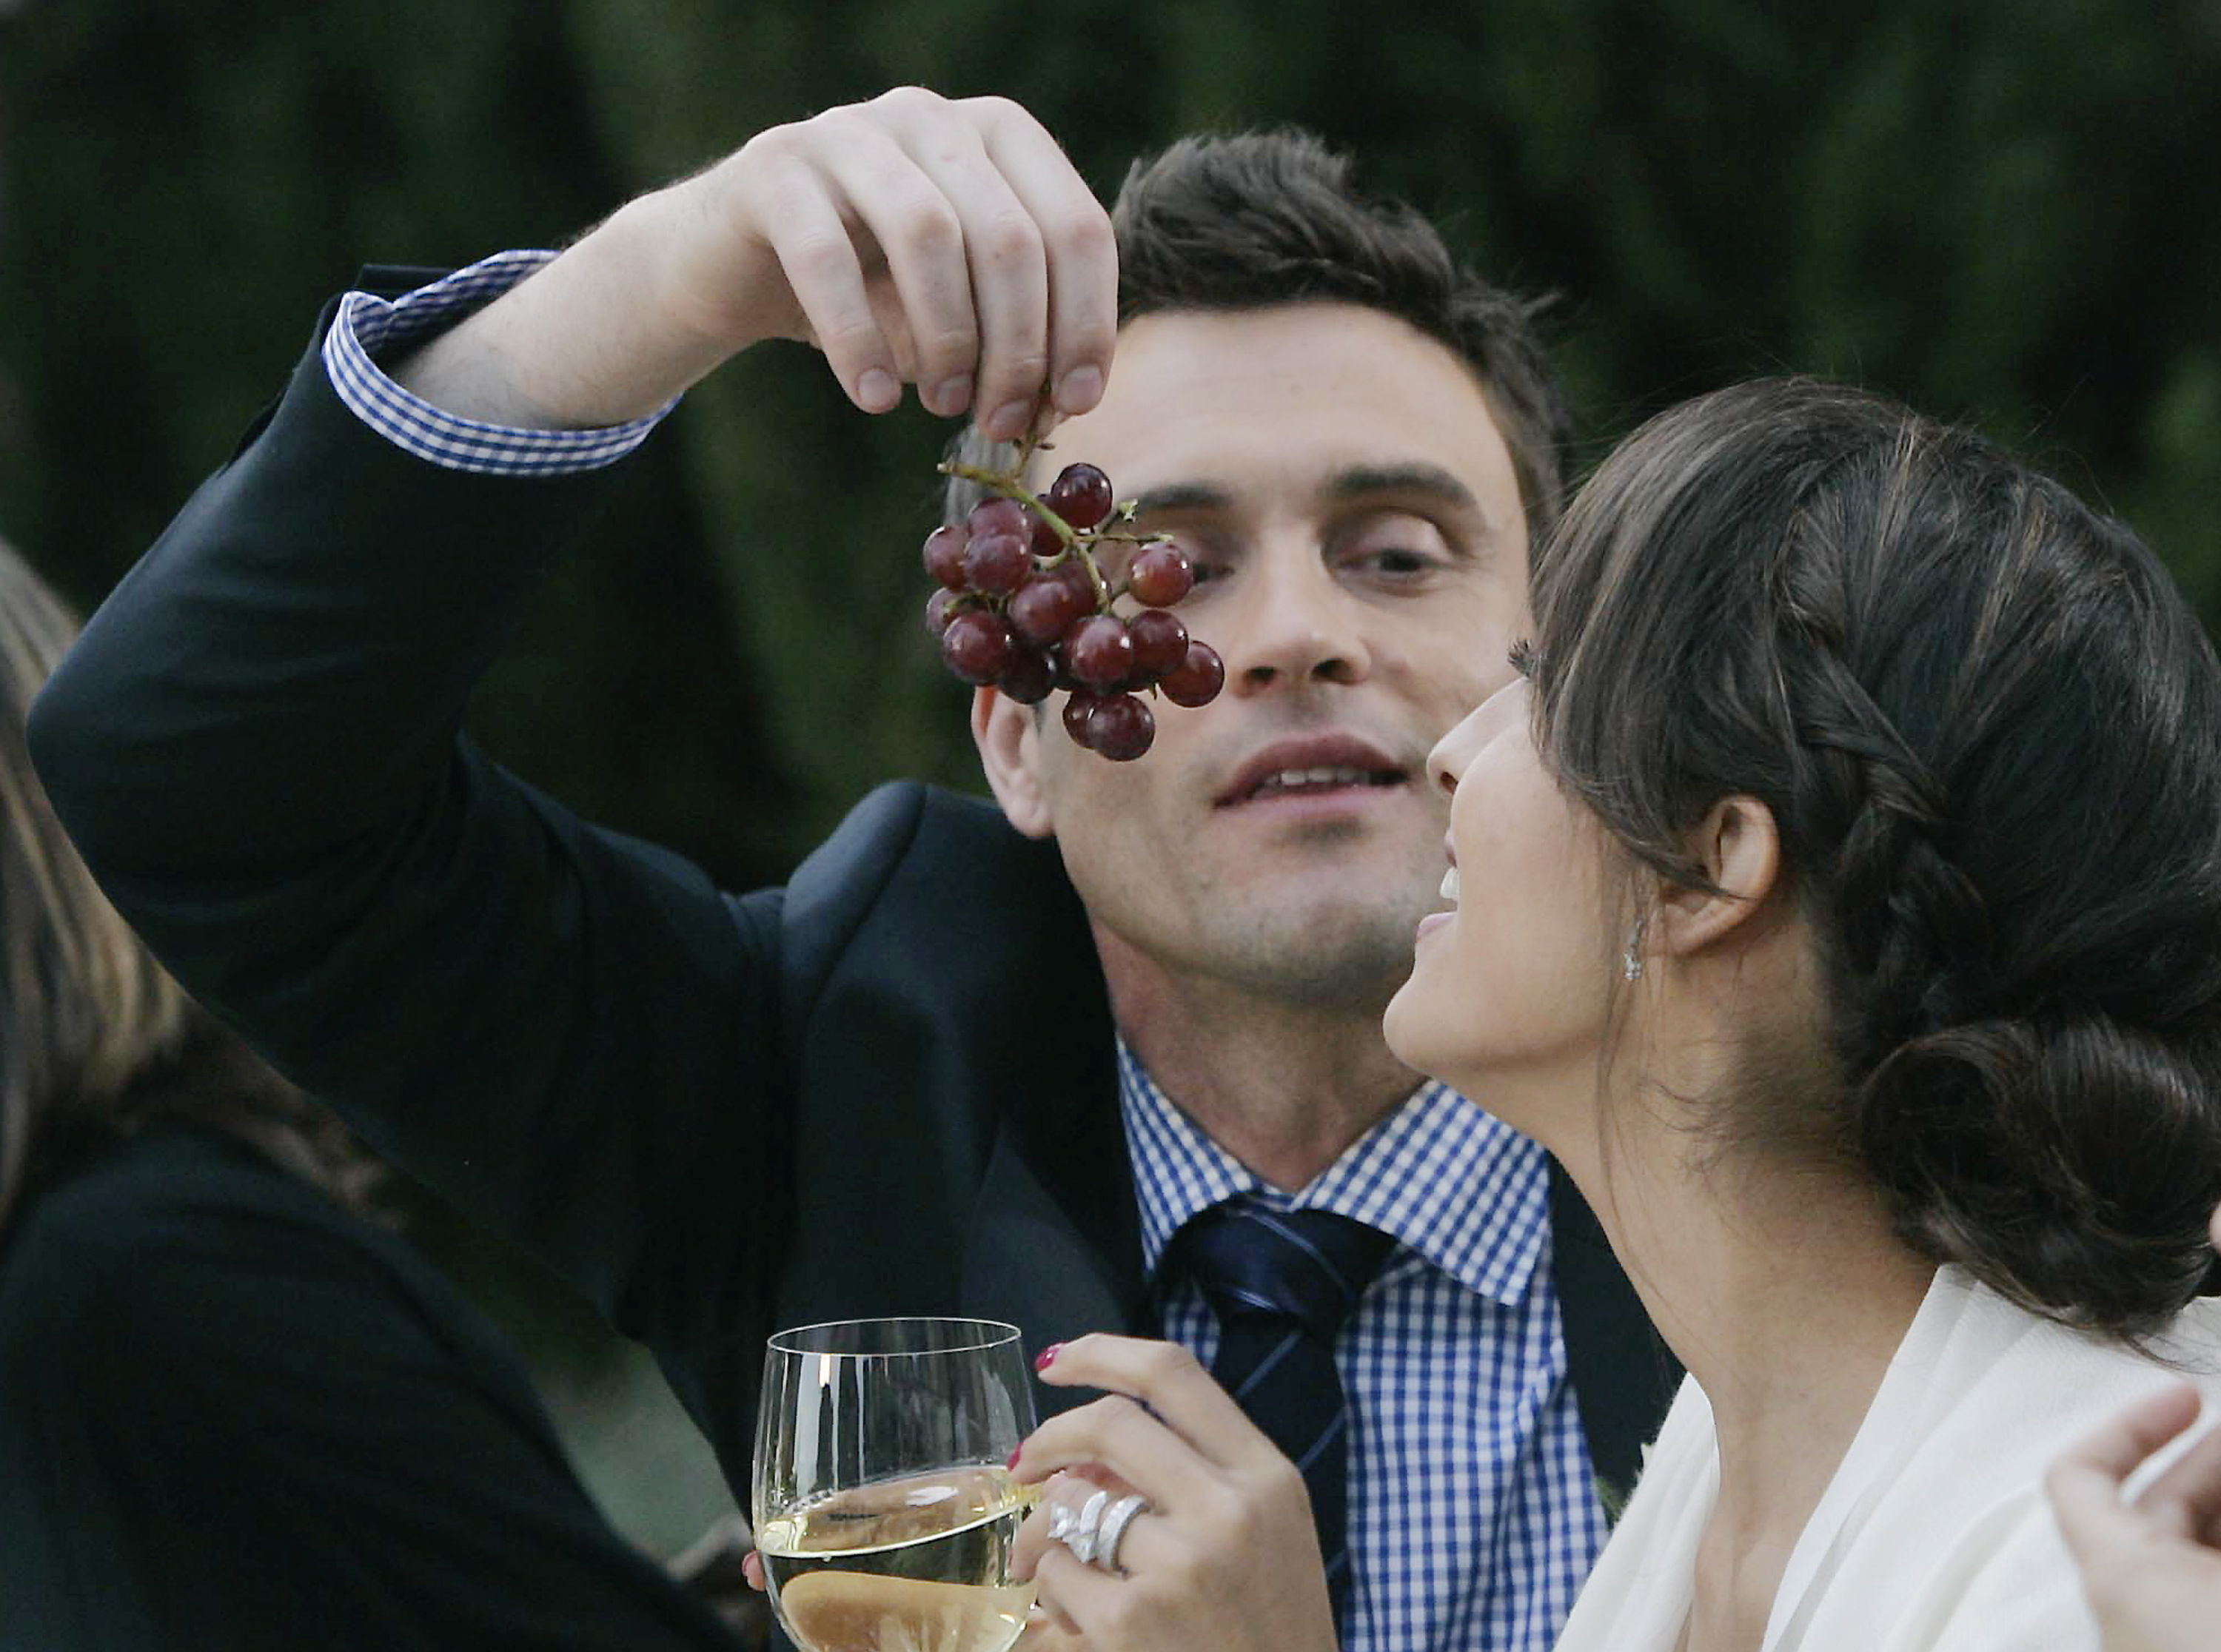 "Daniel Goddard, Christel Khalil""The Young and the Restless"" Set on location Episode # 9844Greystone MansionBeverly Hills, Ca01/24/12©sean smith/jpistudios.com310-657-9661Episode # 9844U.S. Airdate 02/15/12"